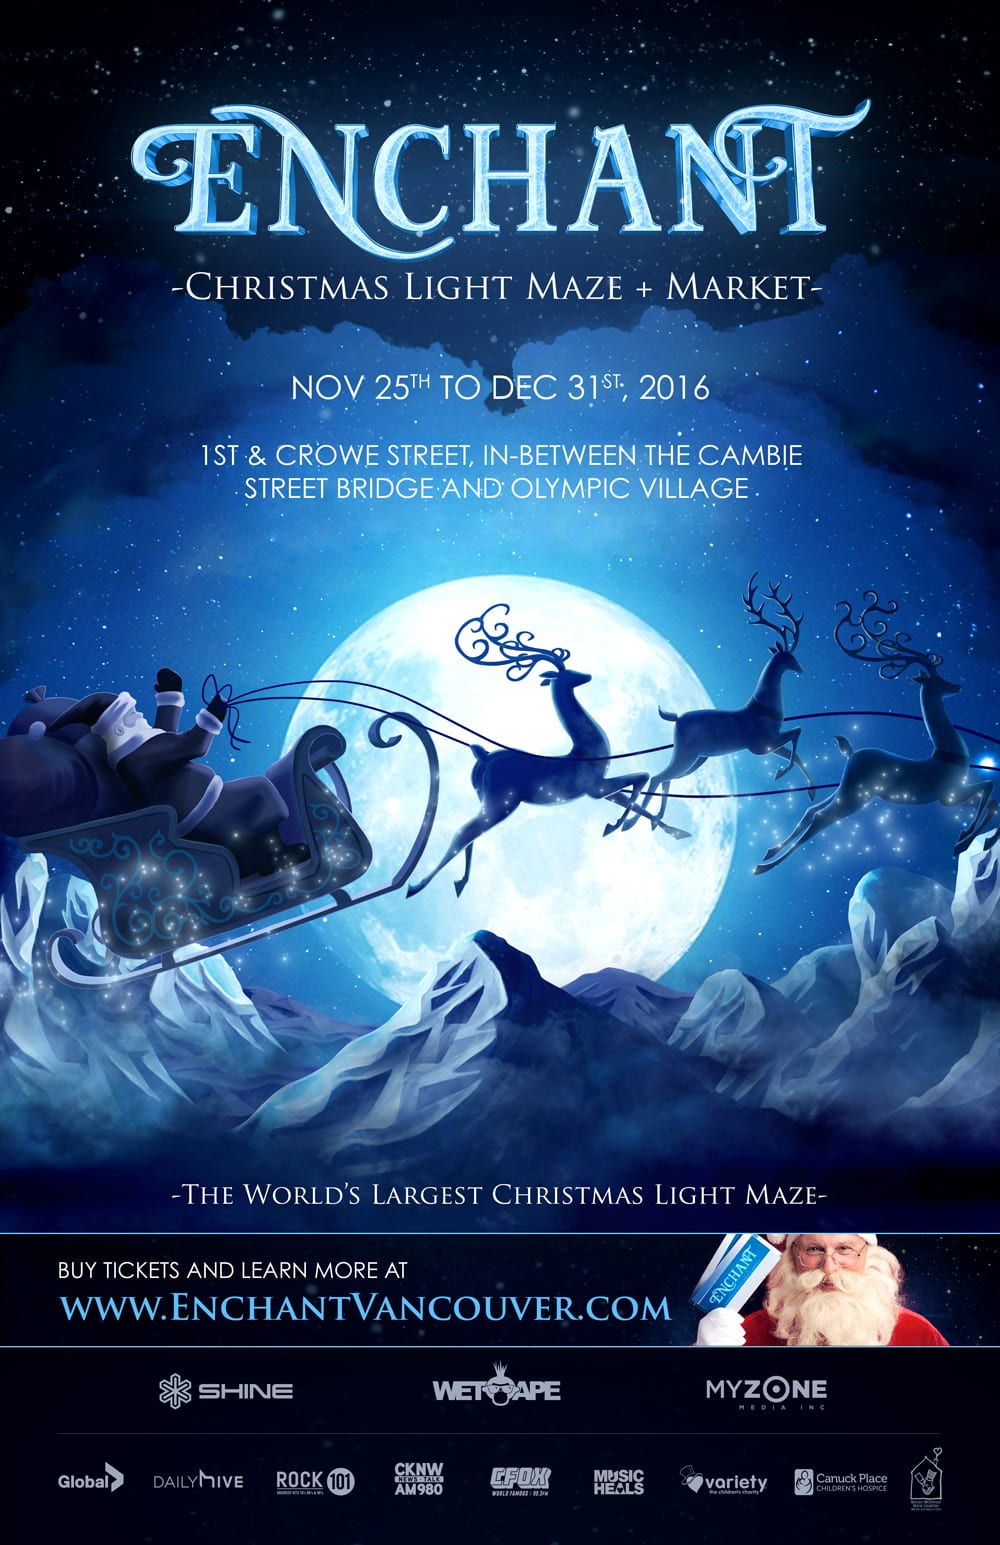 Enchant – Christmas Light Maze and Market Vancouver